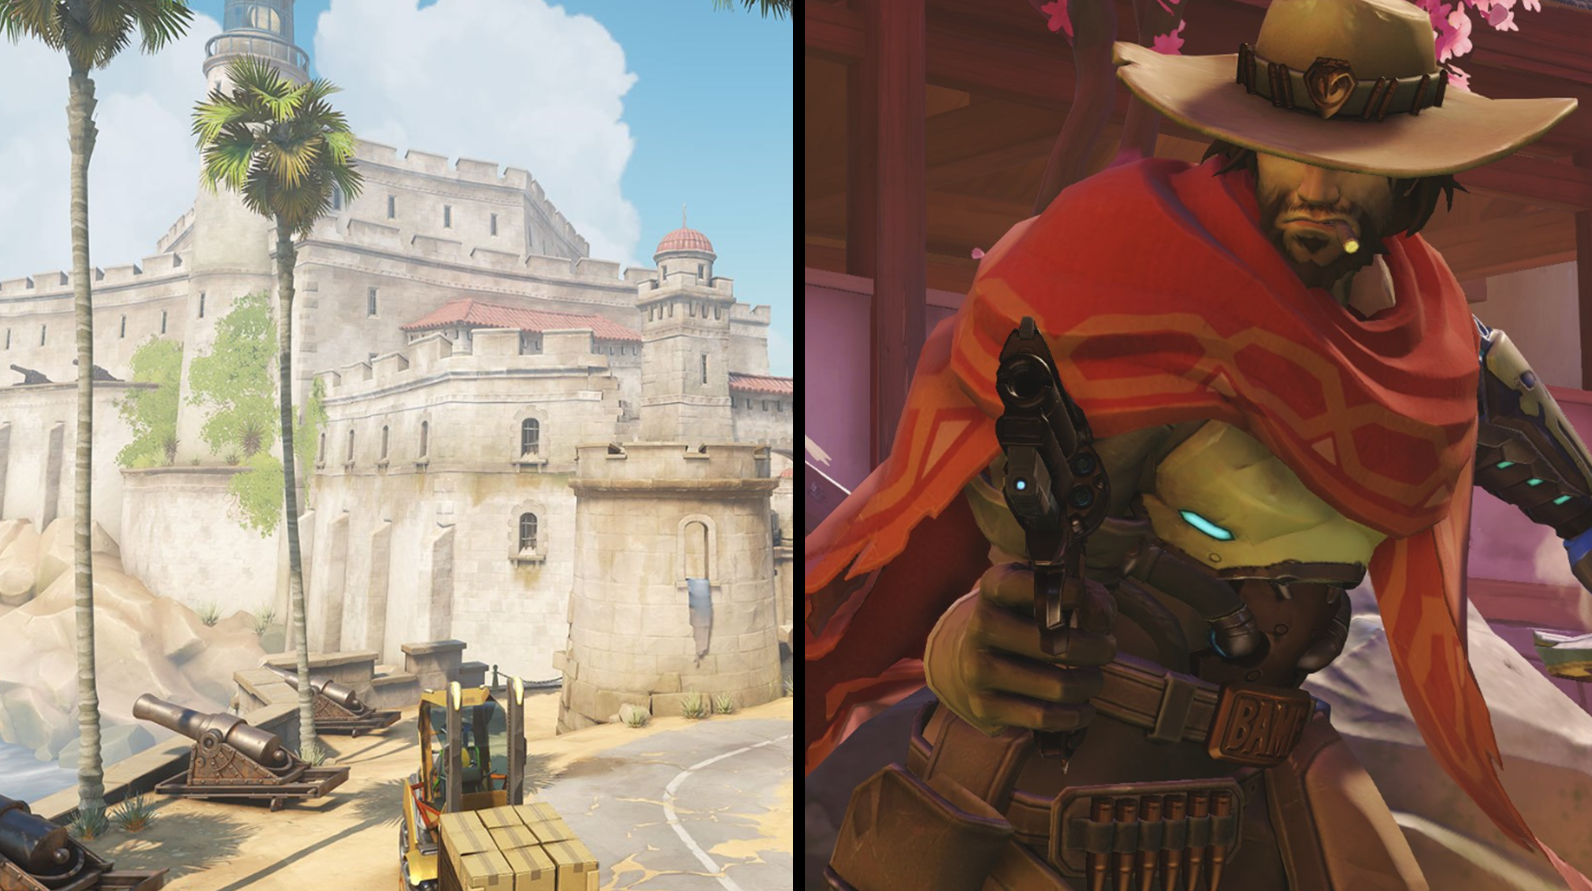 Overwatch Havana Escort map gives McCree cover while using his Deadeye ultimate ability